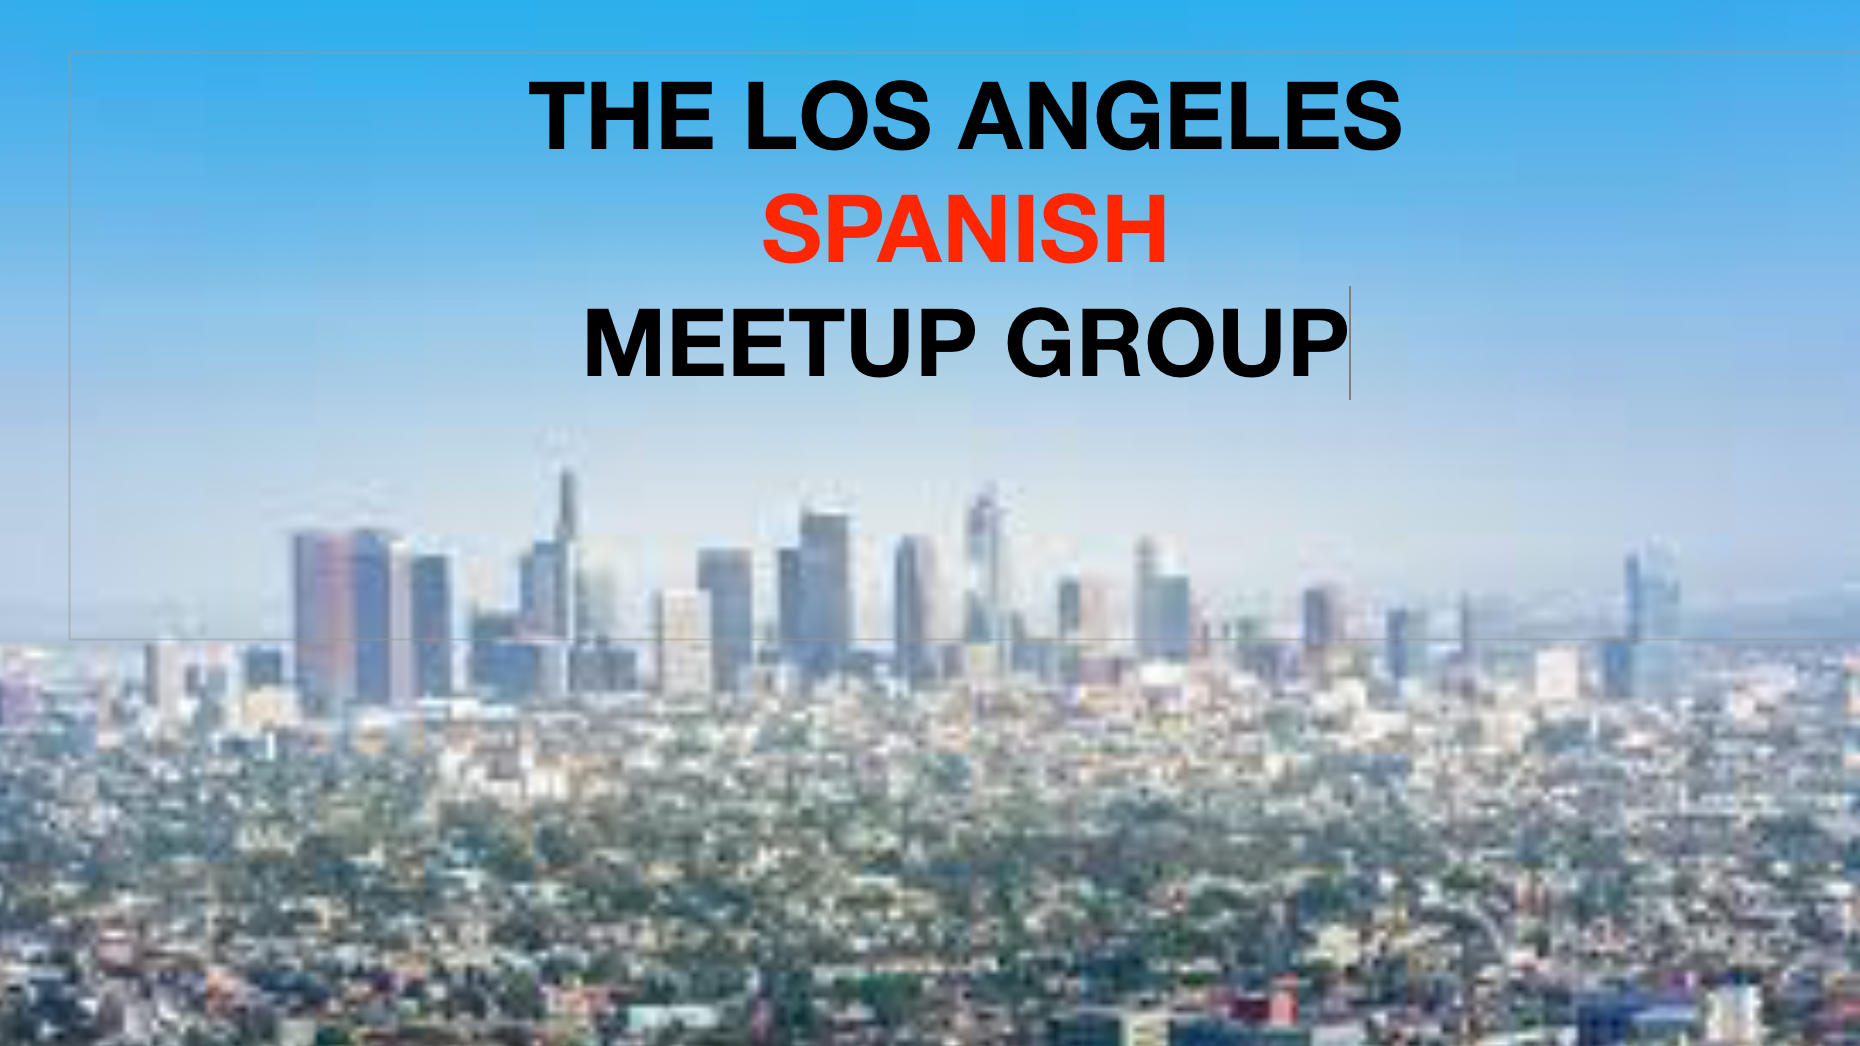 The Los Angeles Spanish Meetup Group